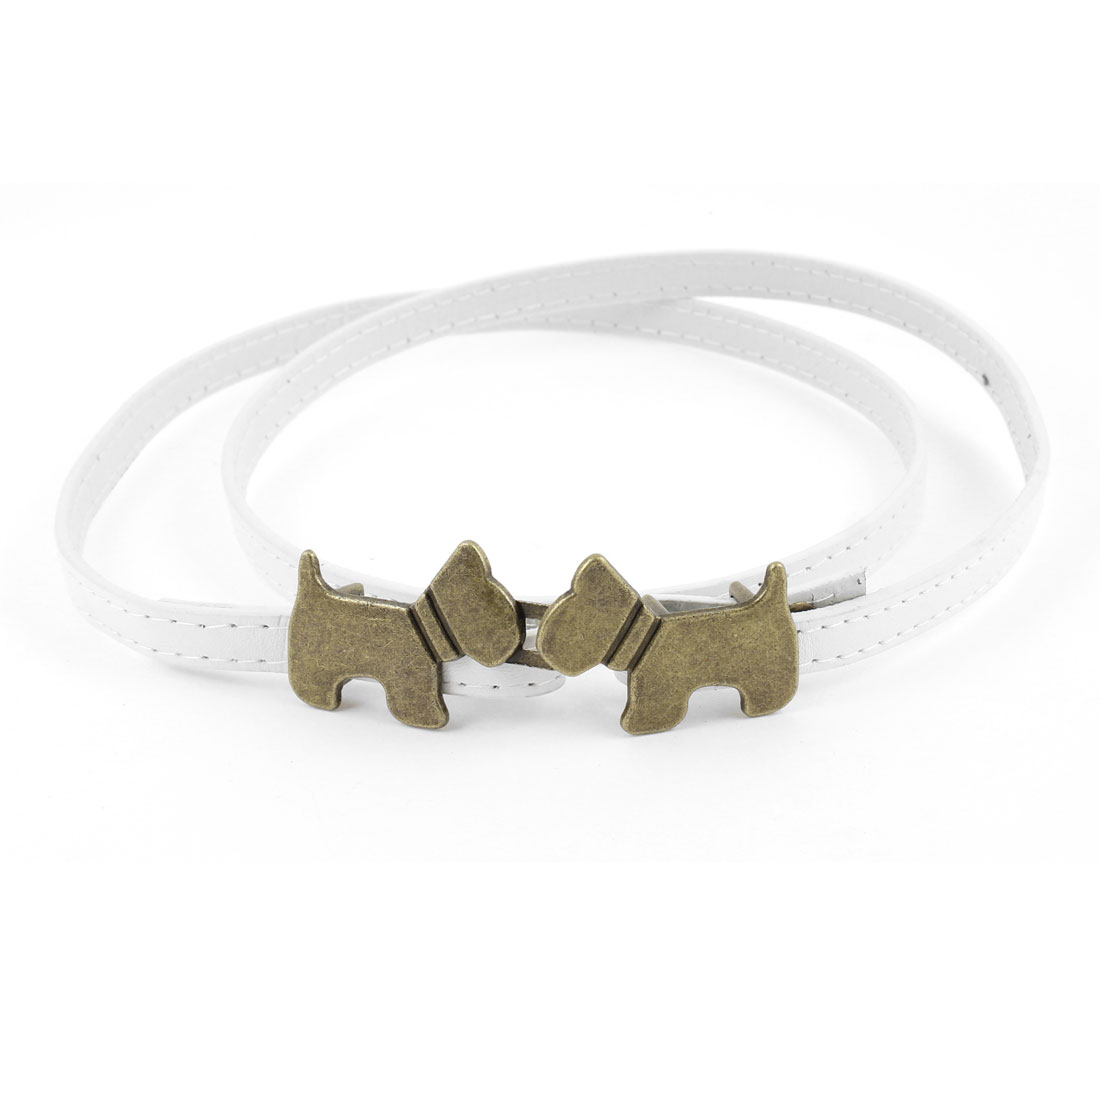 10mm Width Dog Accent Interlock Buckle Adjusting White Faux Leather Waist Belt